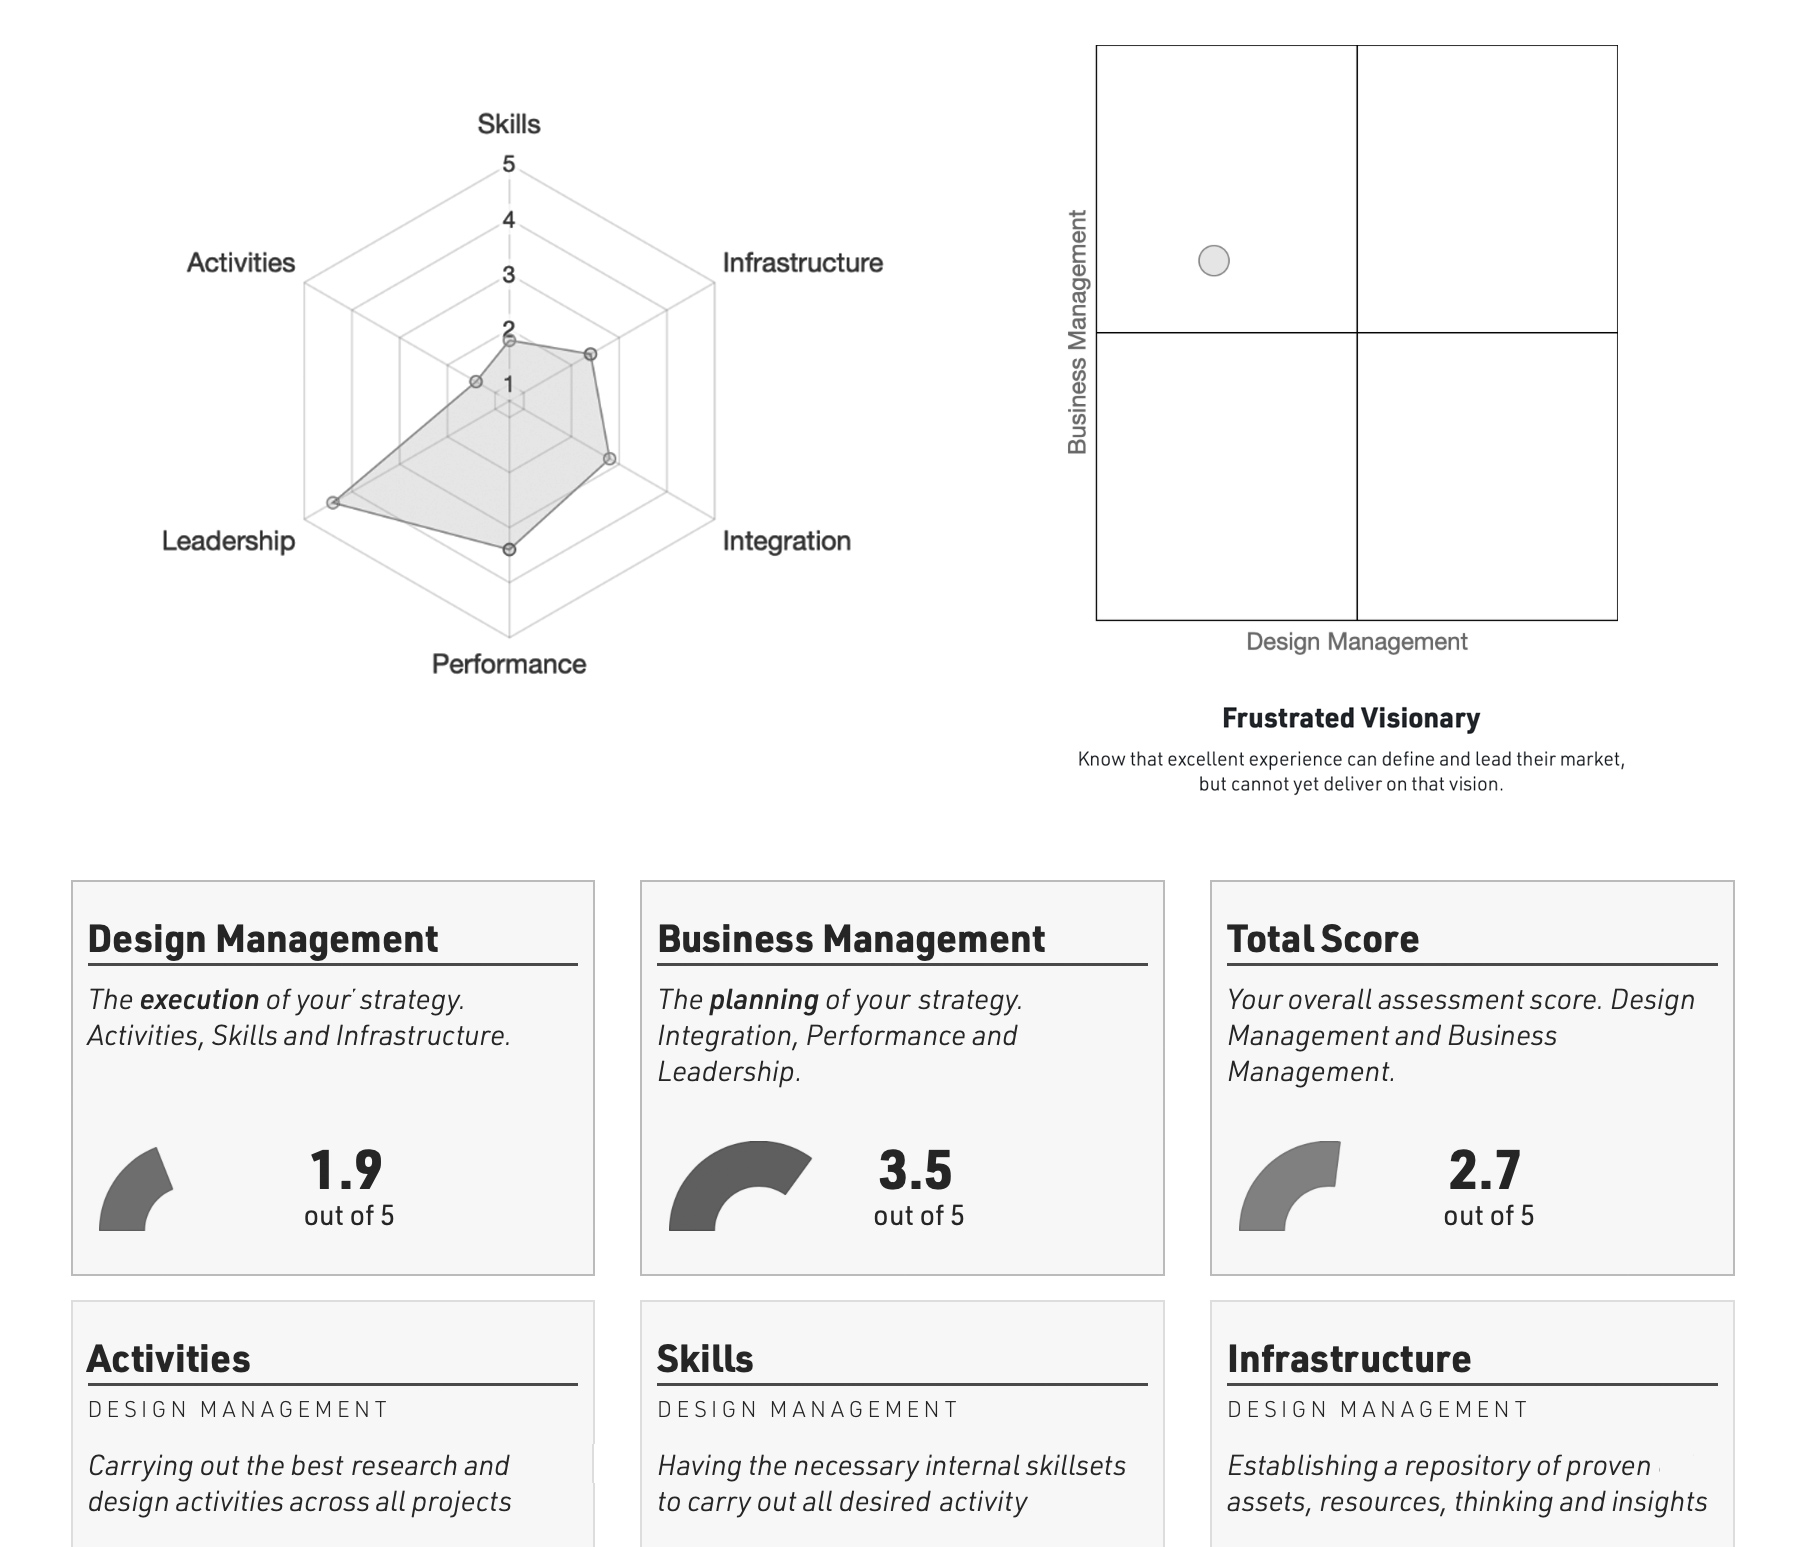 A small view of sample assessment outputs, including a spider graph, four-quadrant graph, and individual scores with descriptions.